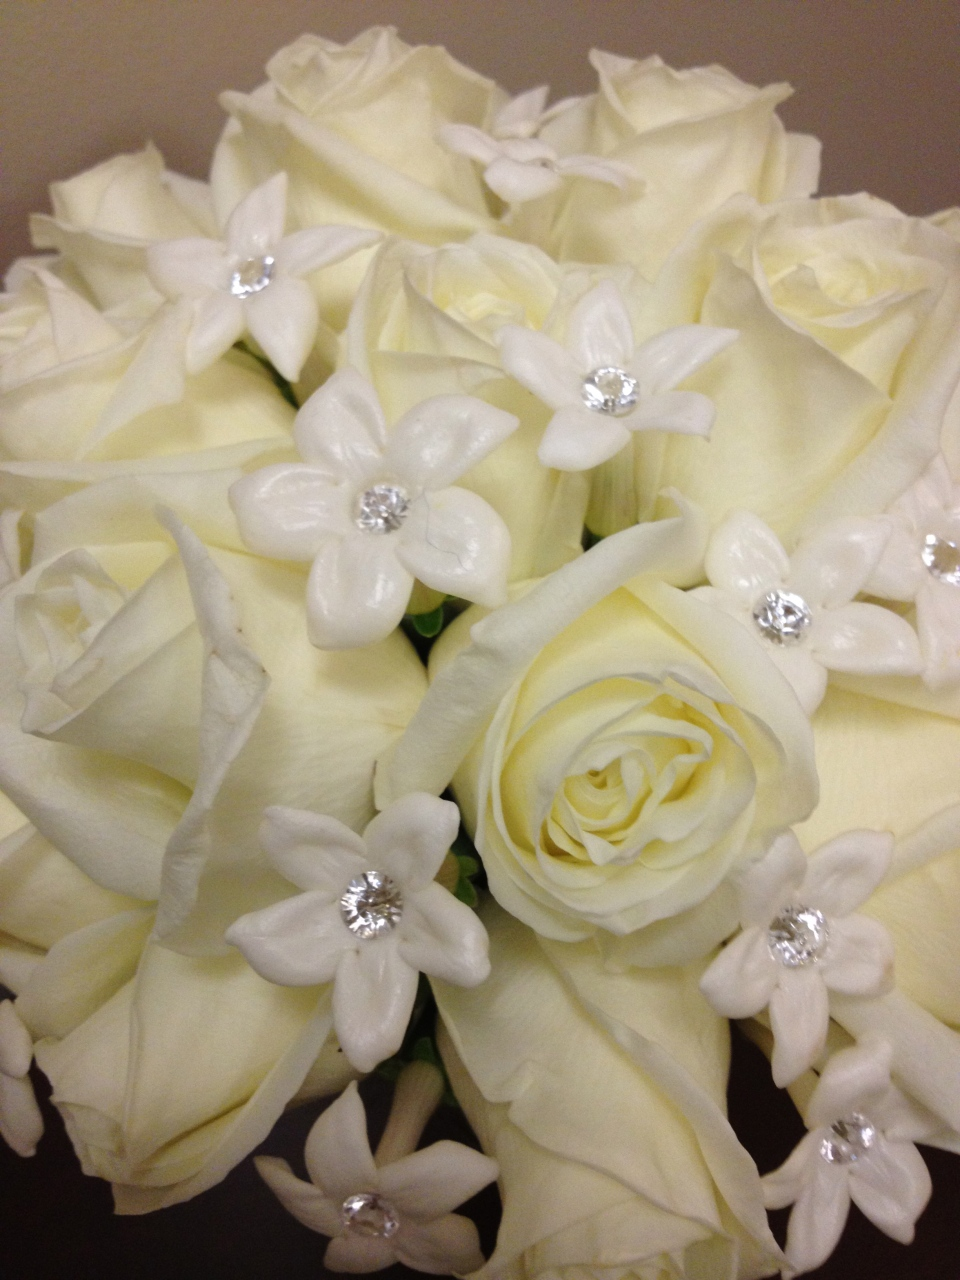 Love those sparkly stephanotis!